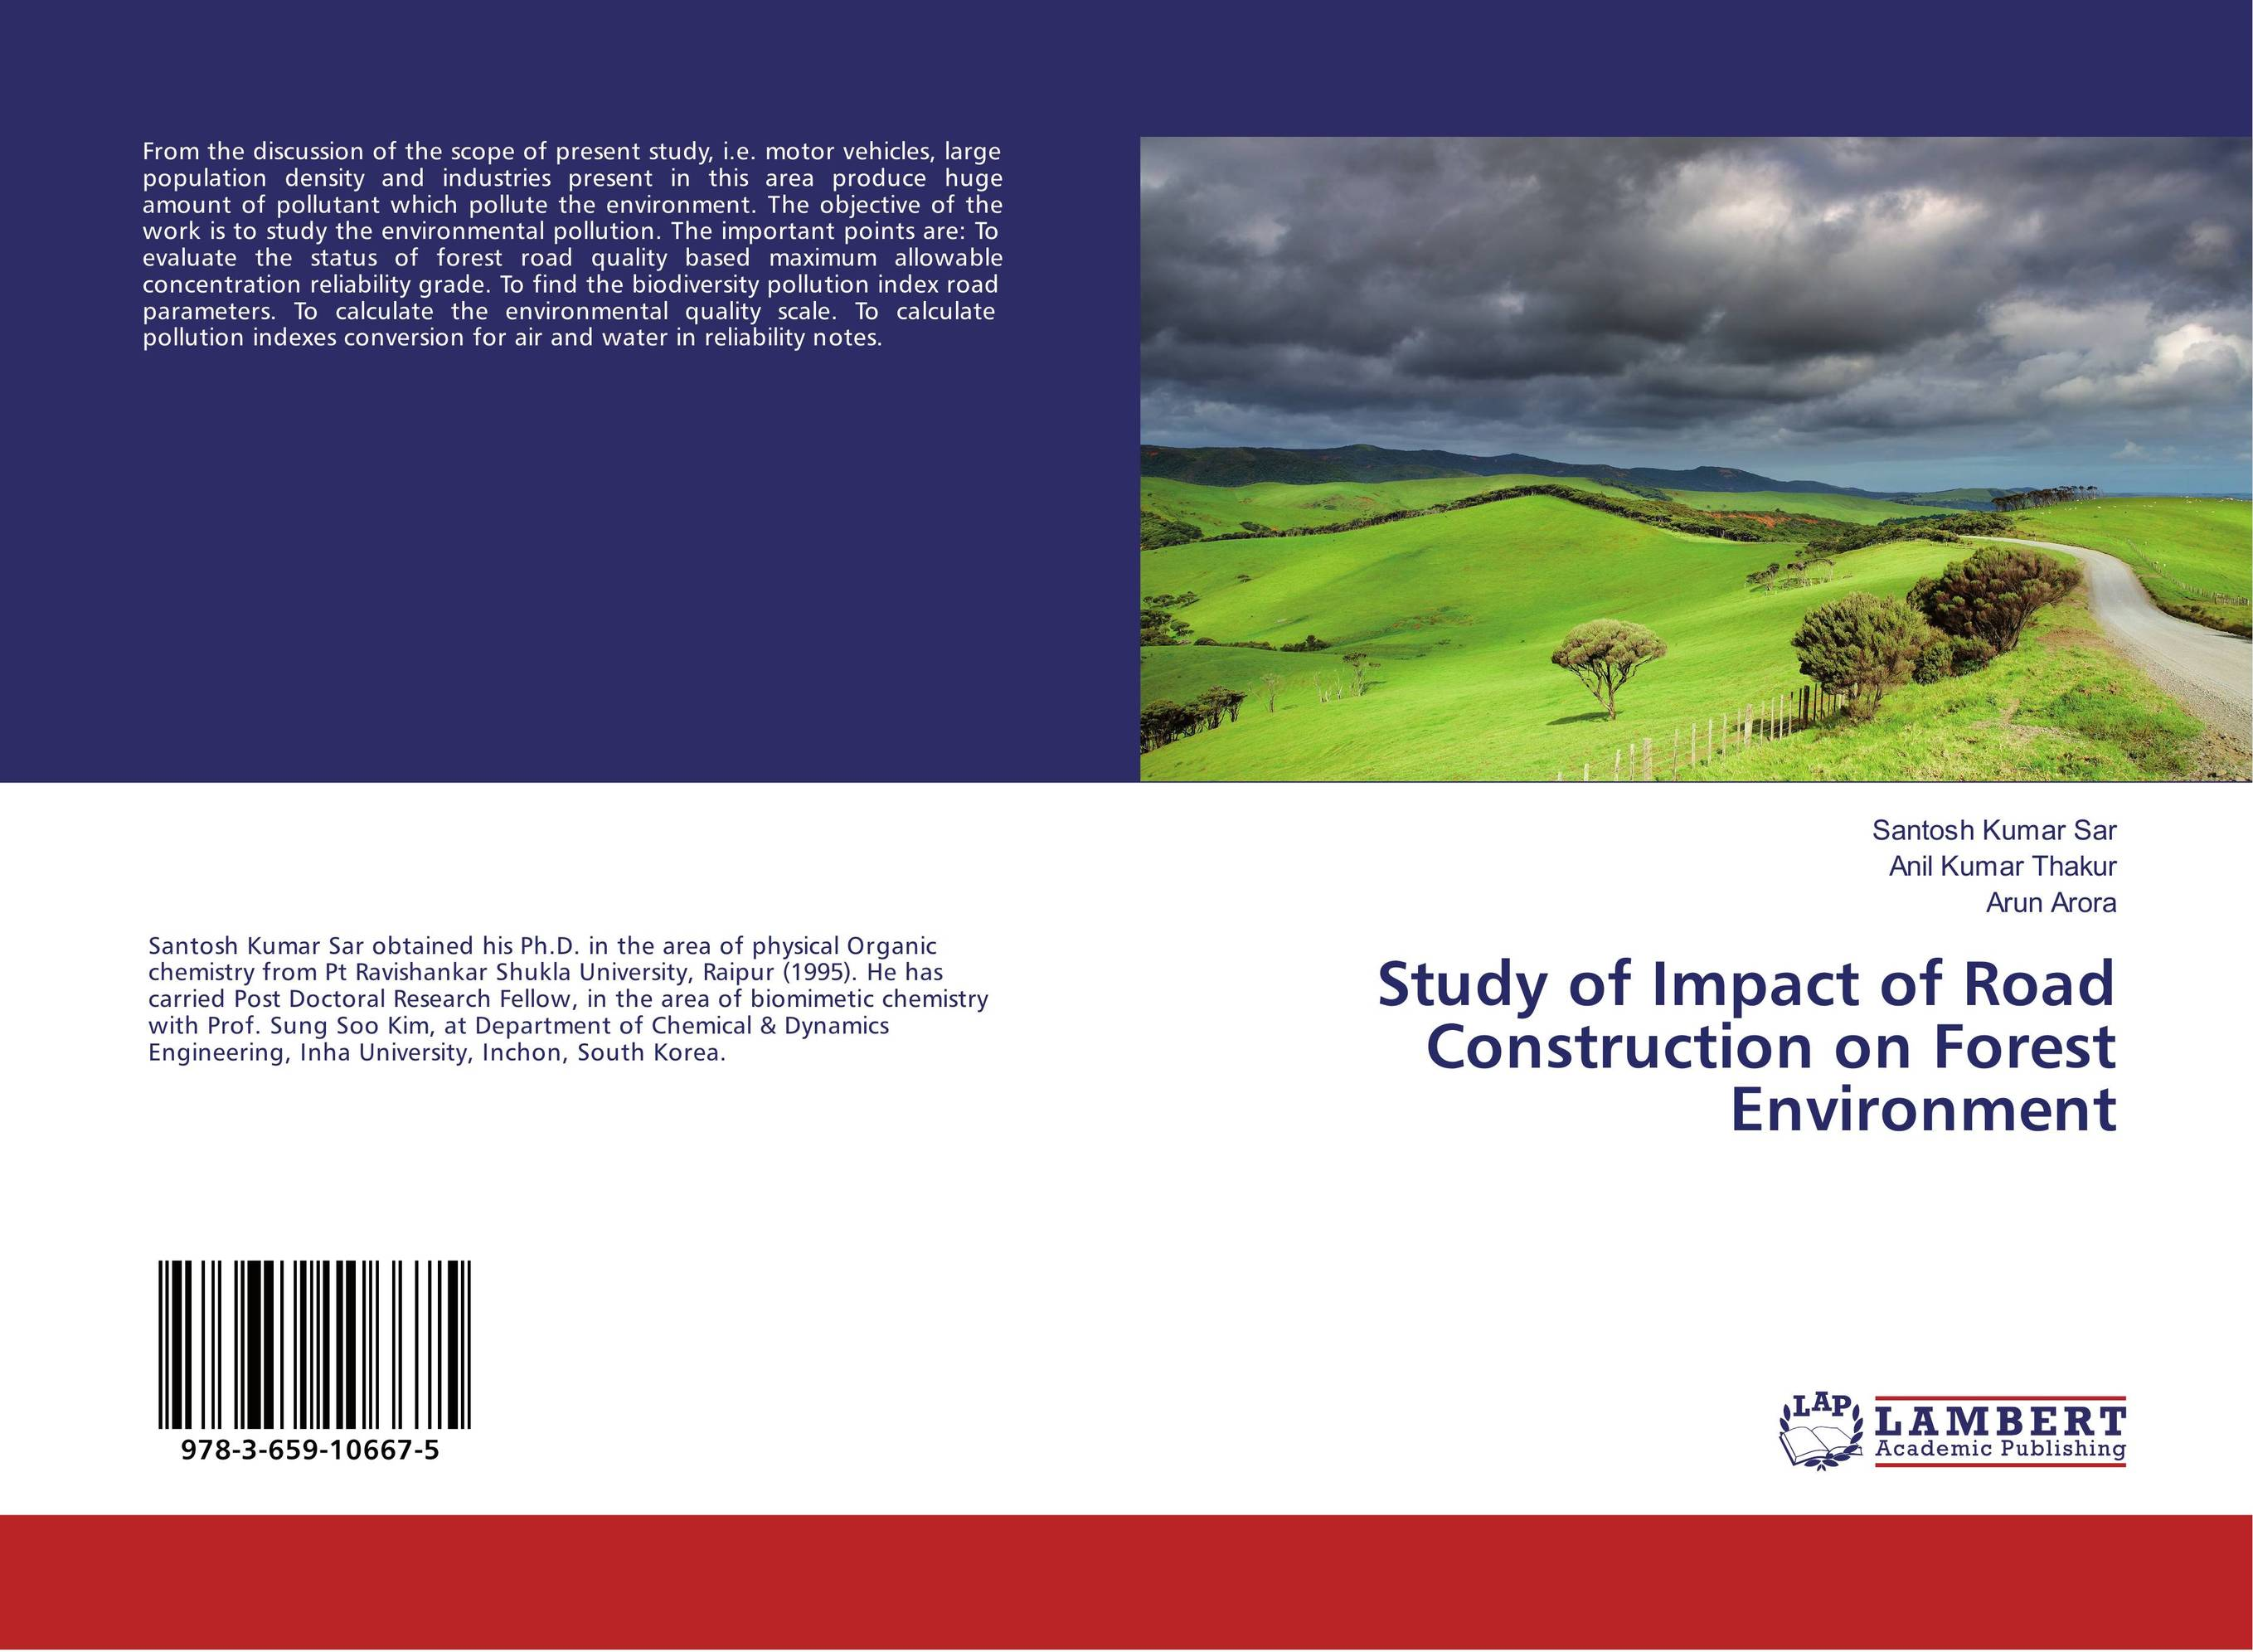 Study of Impact of Road Construction on Forest Environment an introduction to environmental pollution